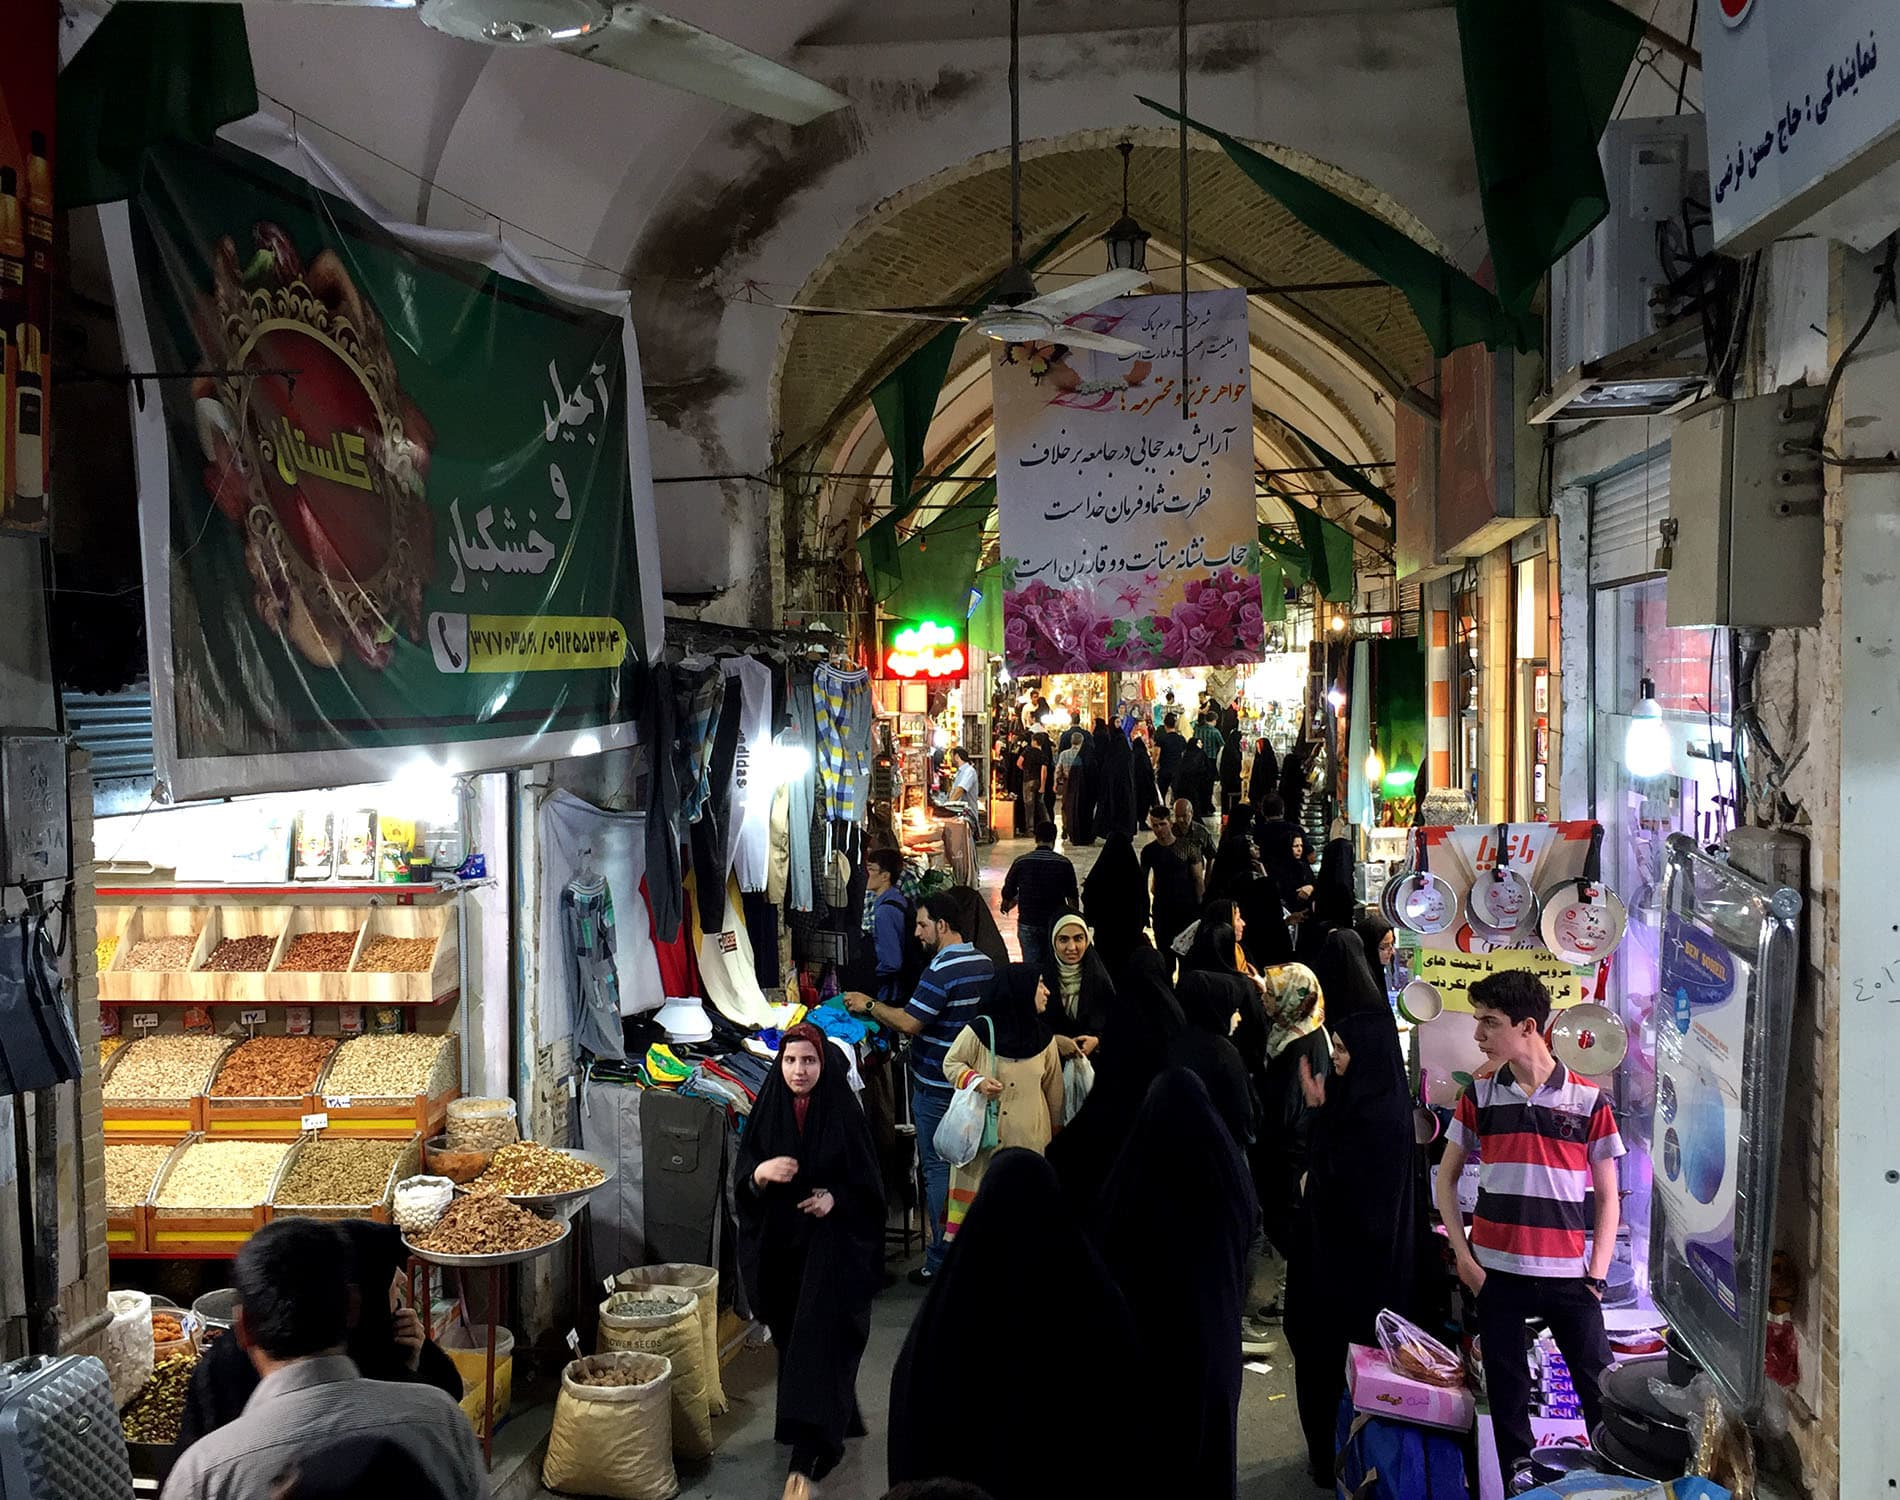 Shoppers inside Qom's historic bazaar, where pilgrims search for souvenirs, devotional icons, and local sweets famous to the city.